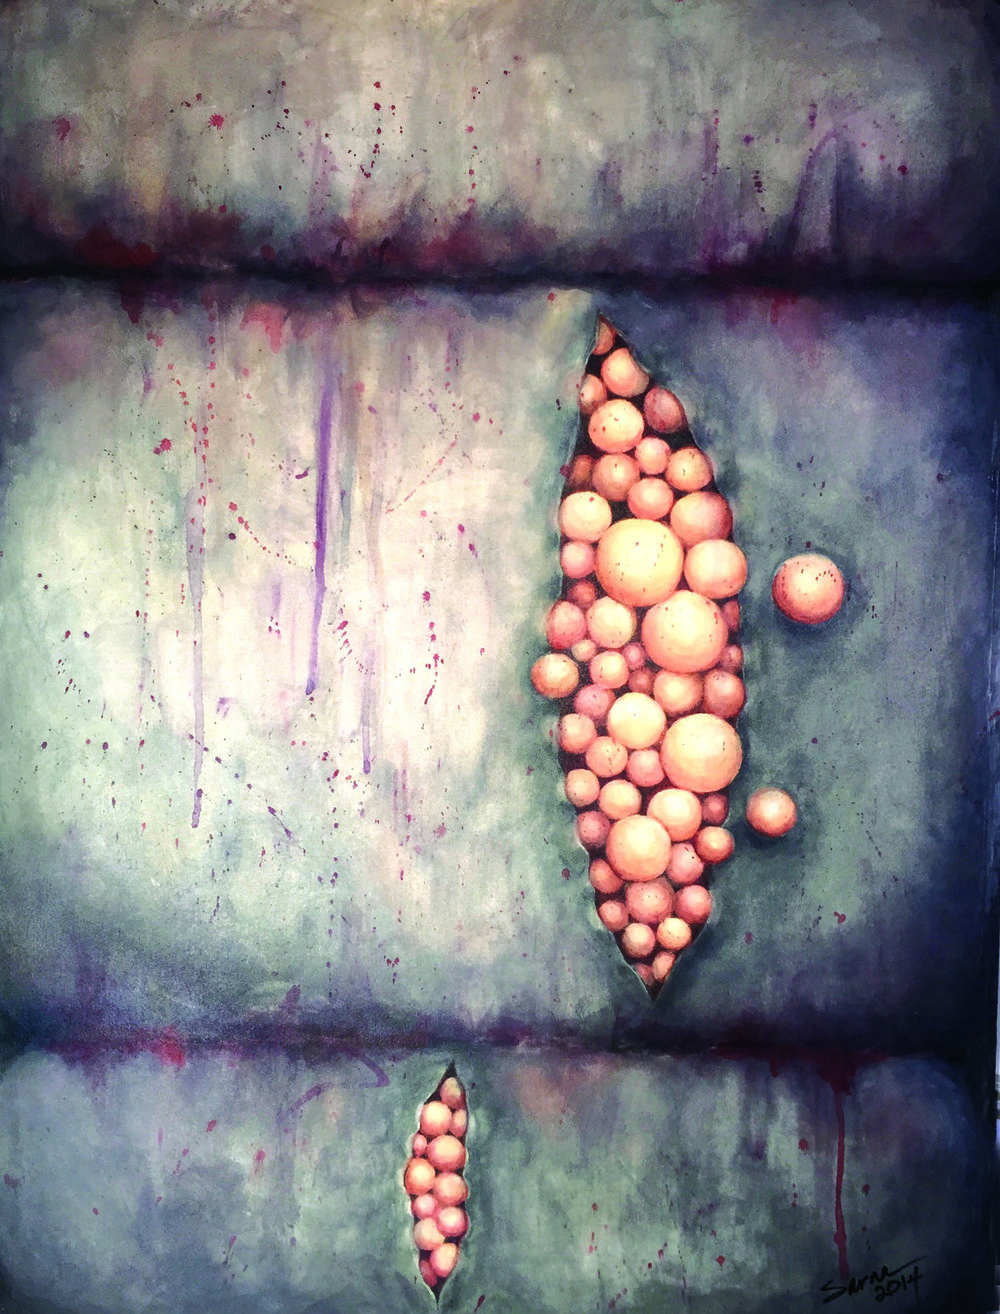 Foundry Gallery-Sarna Marcus -RENDING-Seed AtomII.3 - 29x22- watercolor 2013- $2200.jpg